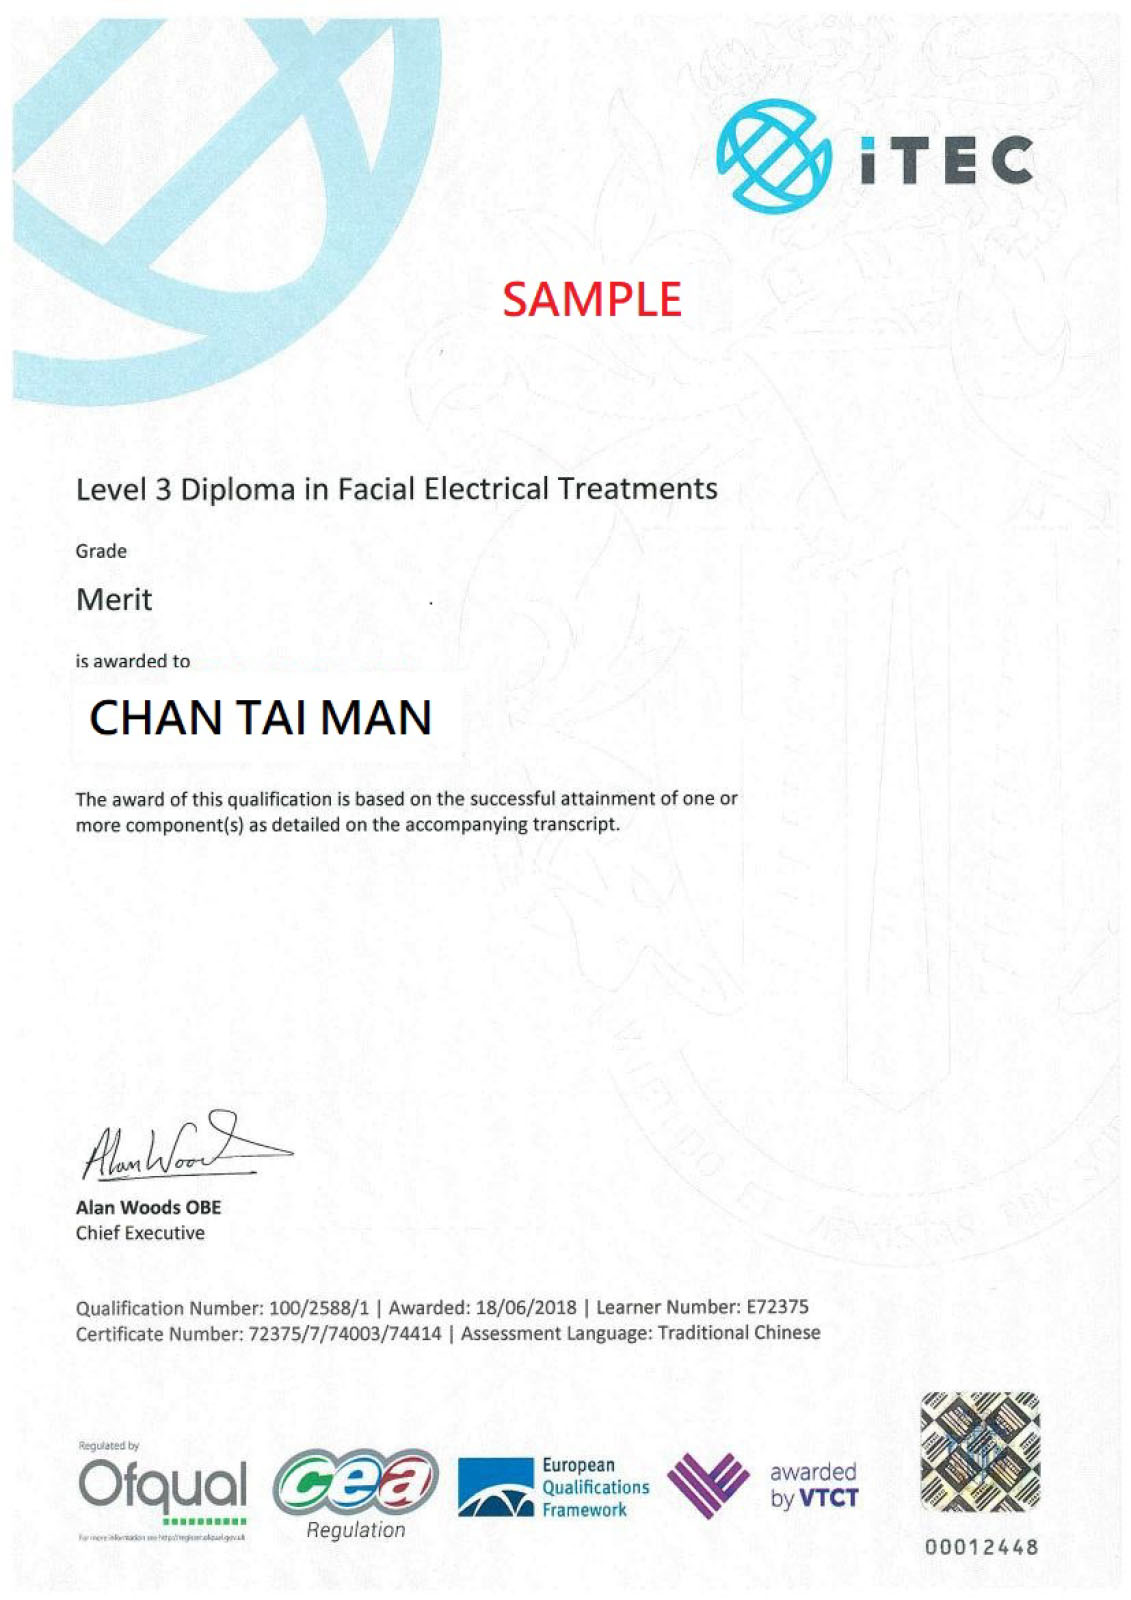 ITEC_Facial_electrial_treatments